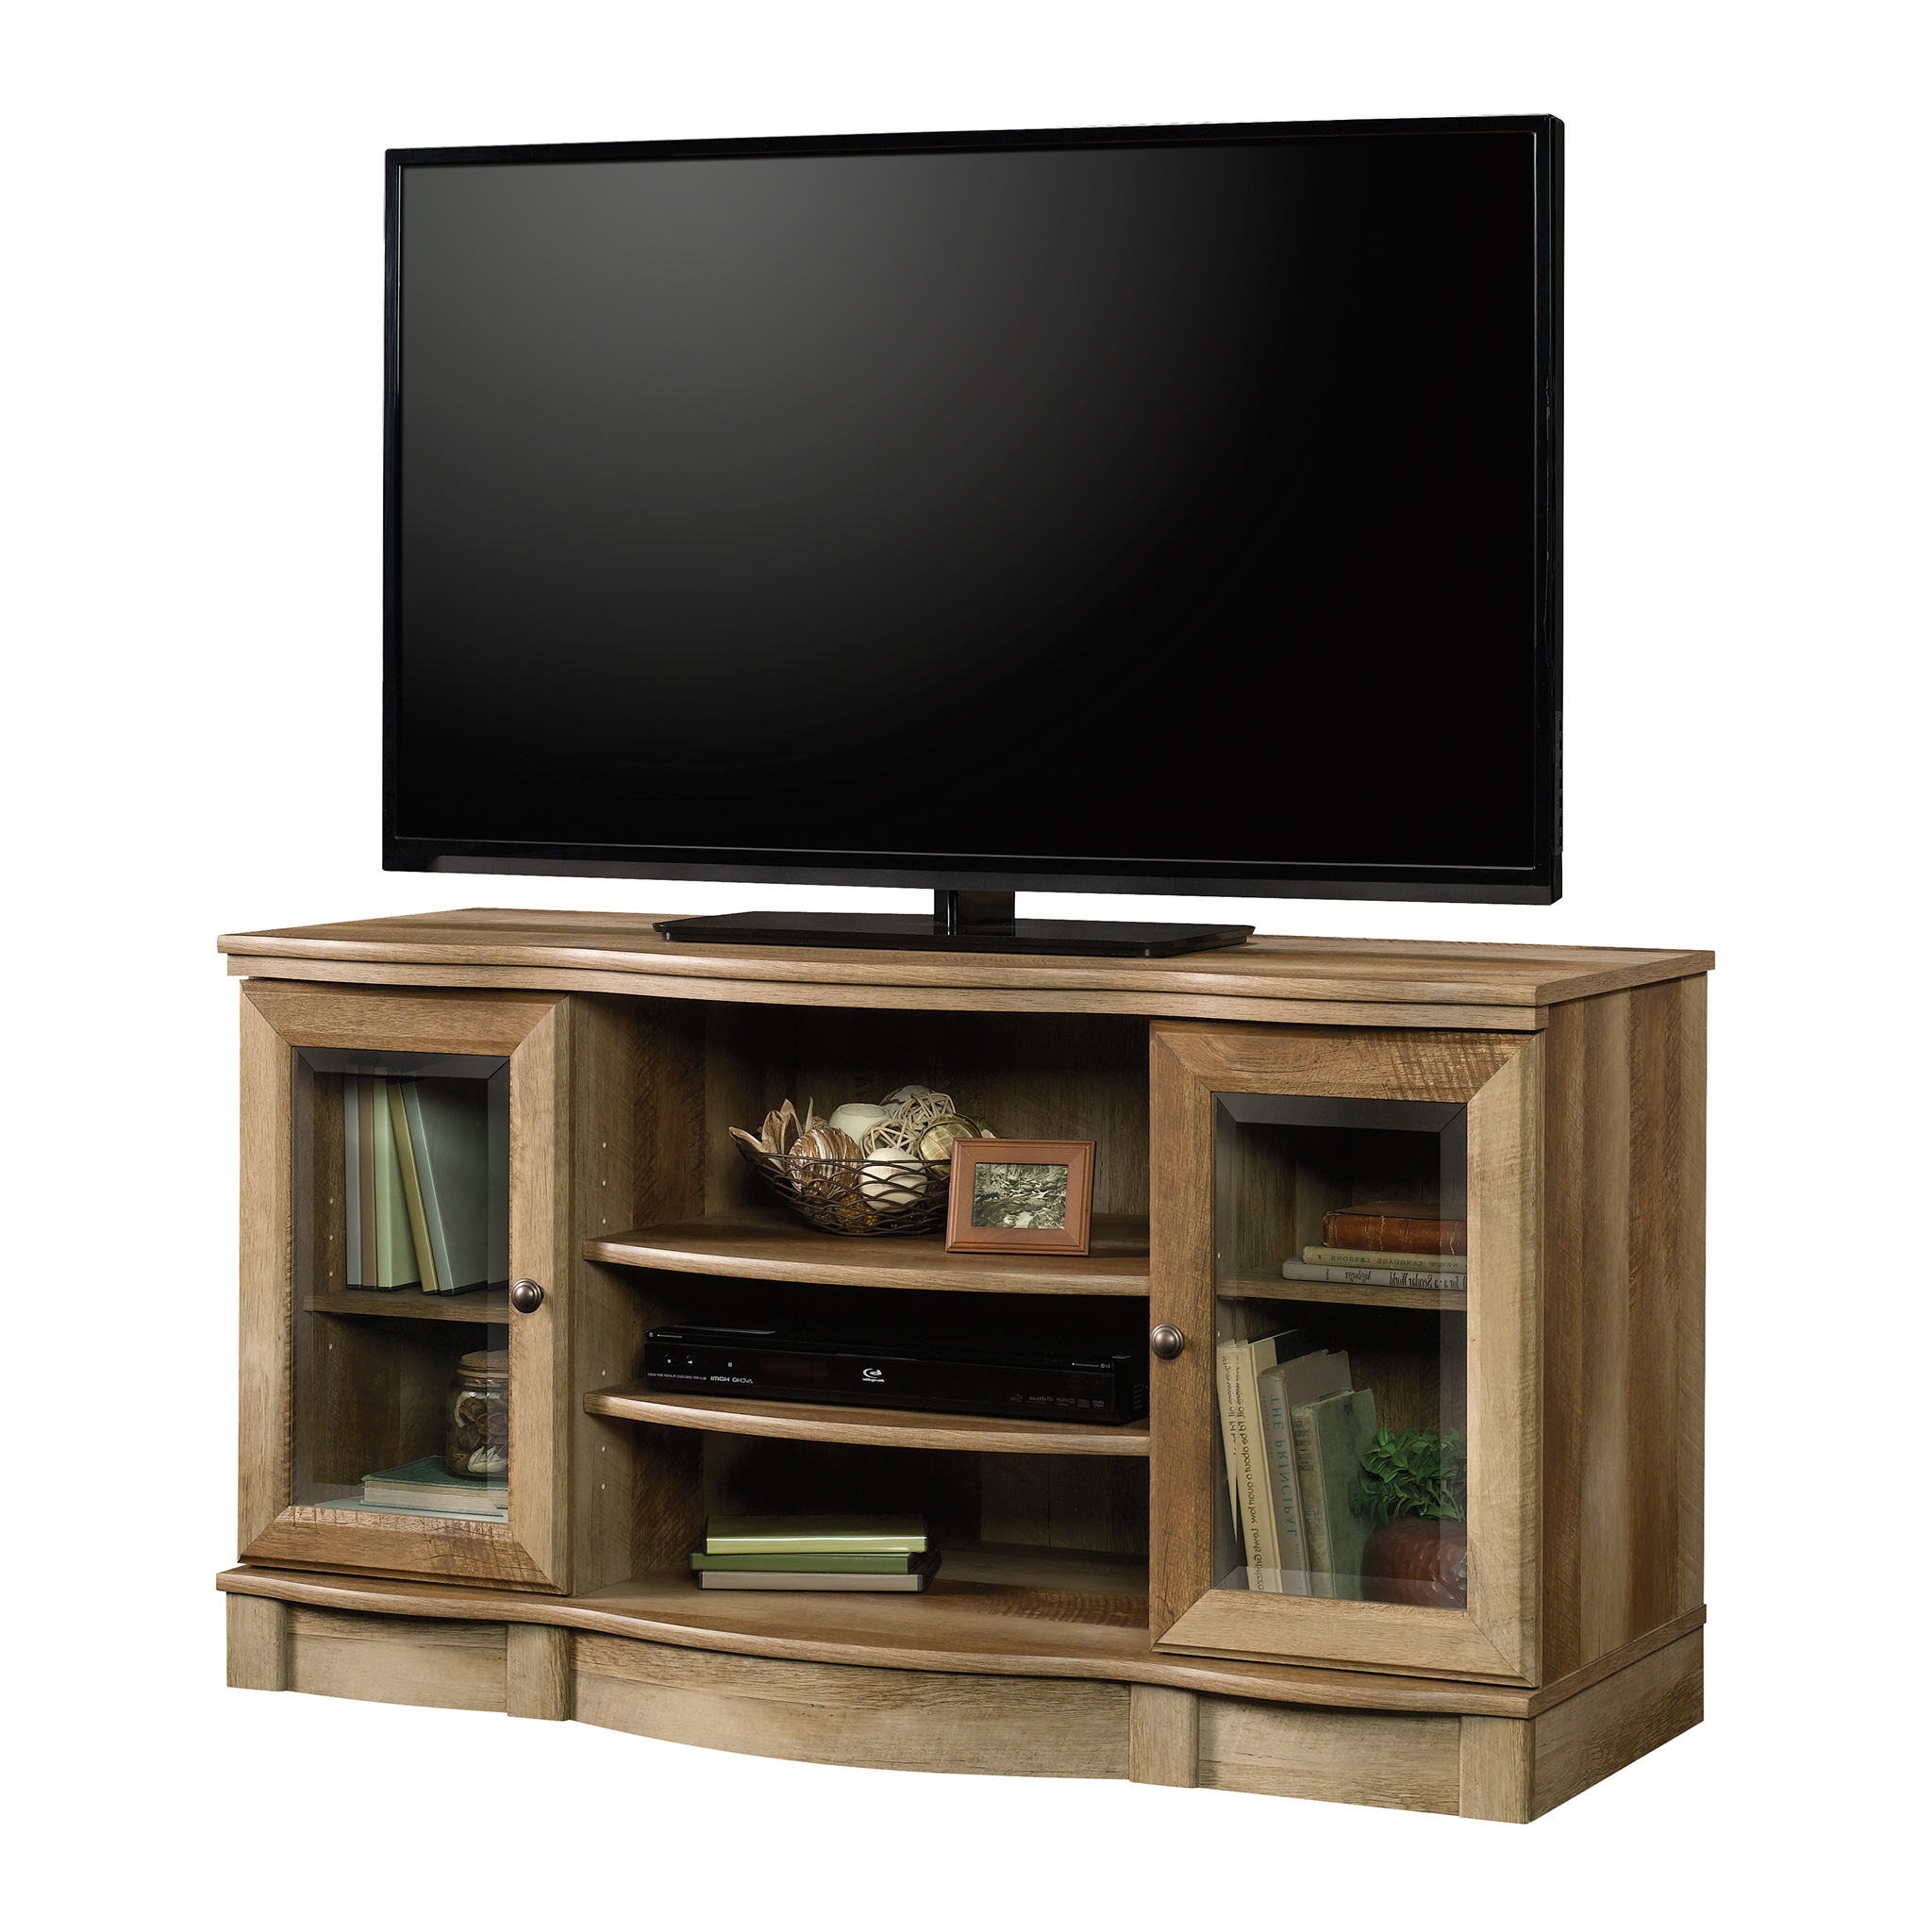 """Sauder Regent Place Tv Stand For Tvs Up To 50"""", Craftsman In Lansing Tv Stands For Tvs Up To 50"""" (View 7 of 20)"""